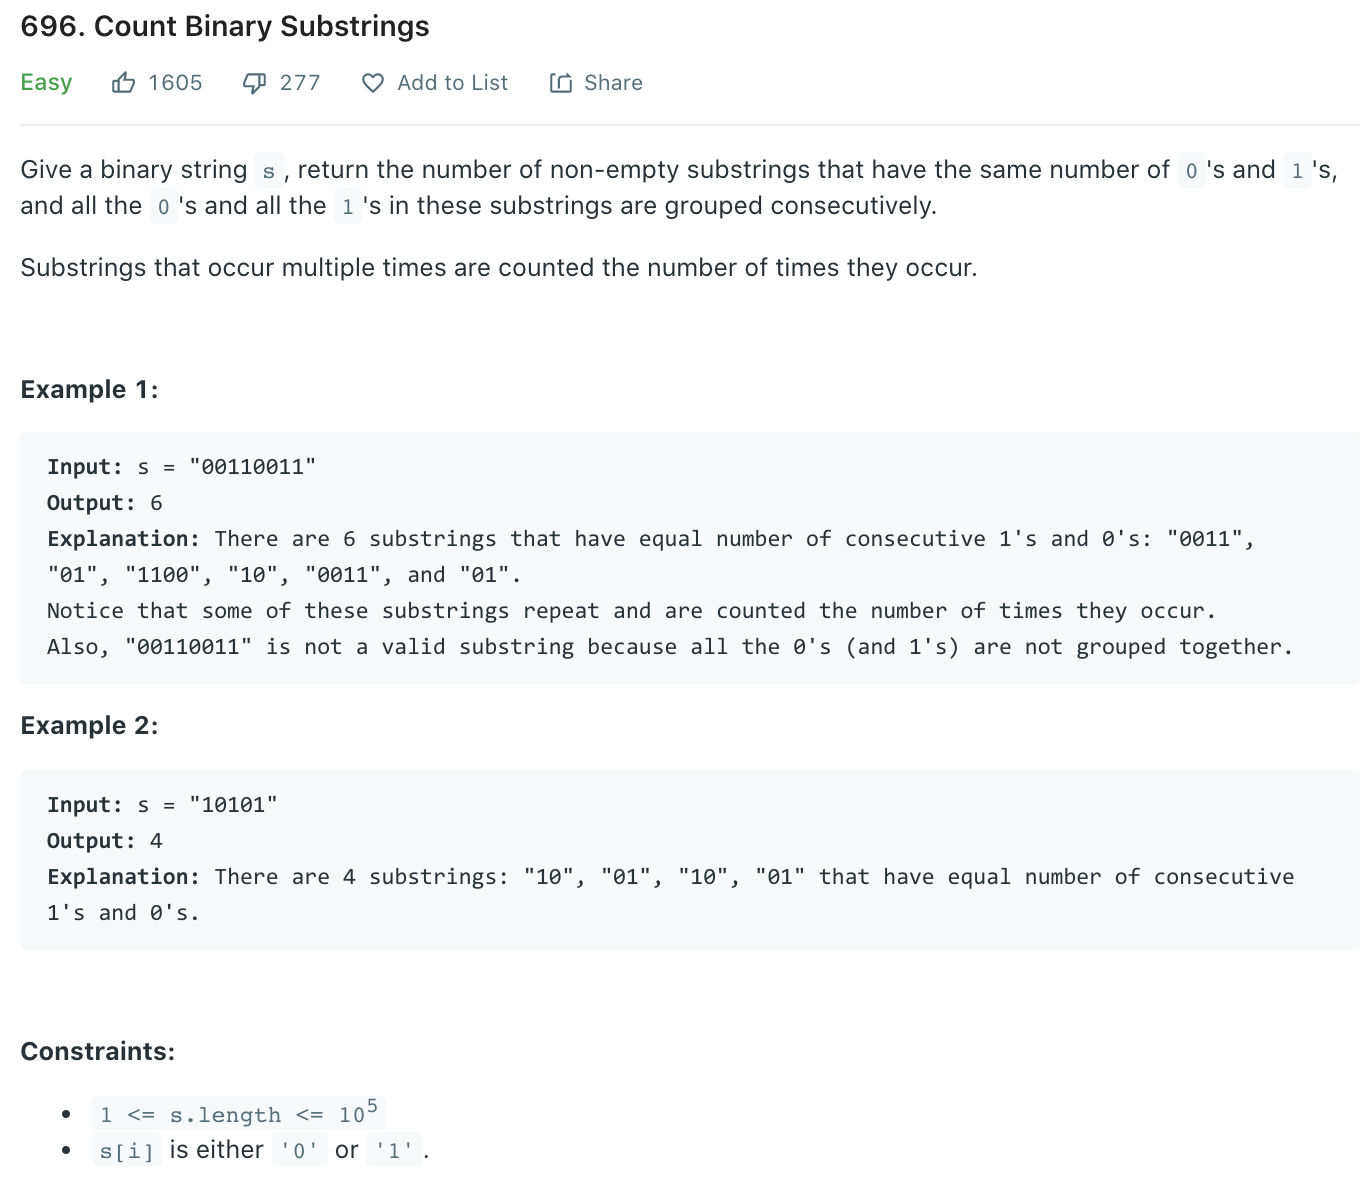 Count Binary Substrings